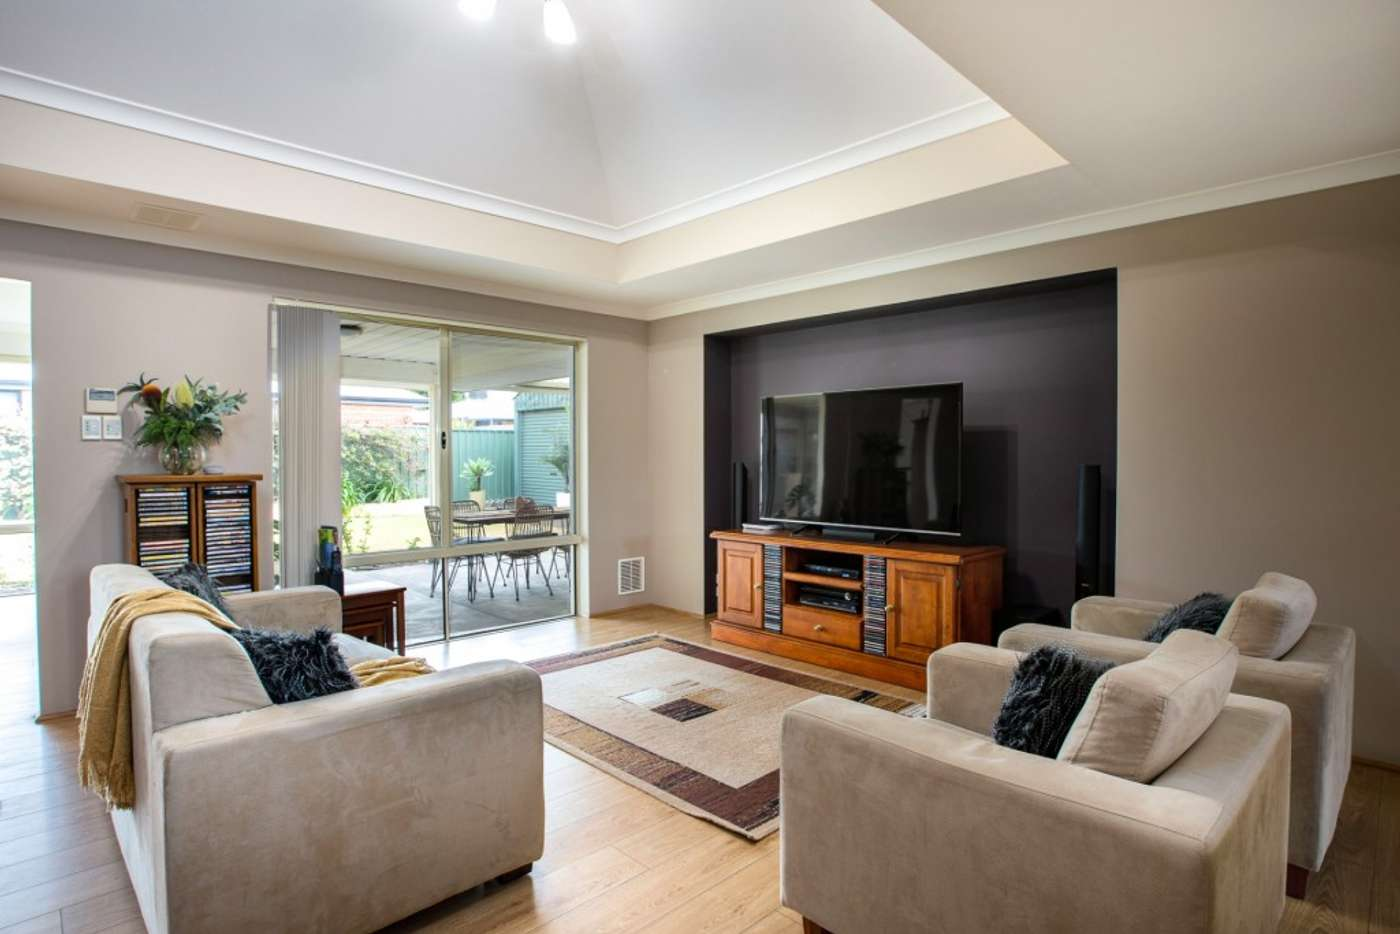 Sixth view of Homely house listing, 54 Griffin Lane, Usher WA 6230